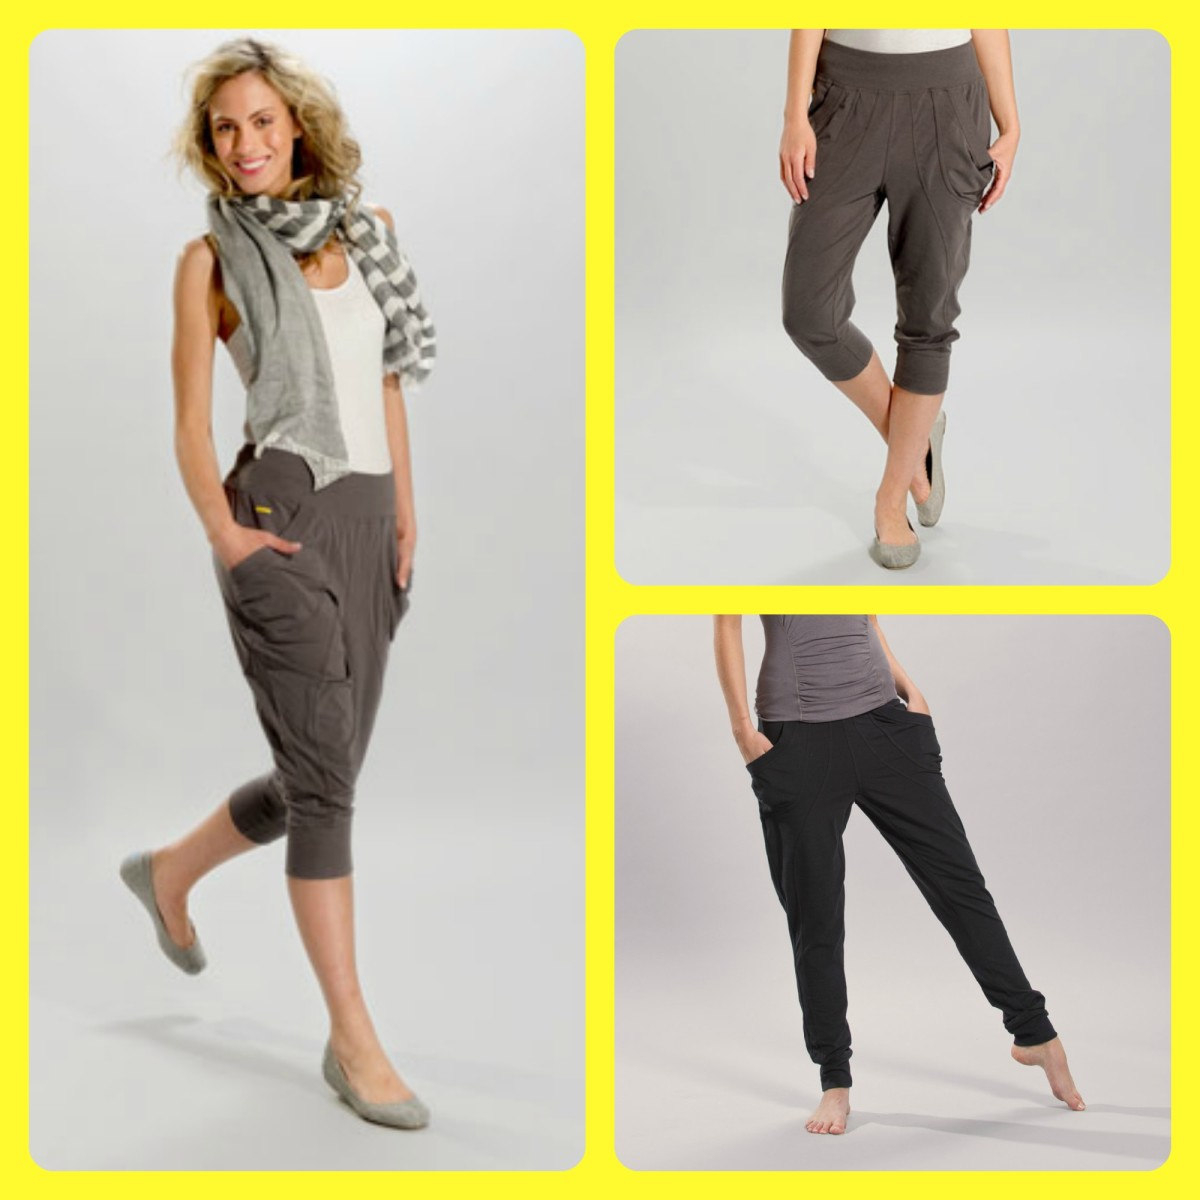 Go long or short in these versatile Yoga pants that work everywhere!!